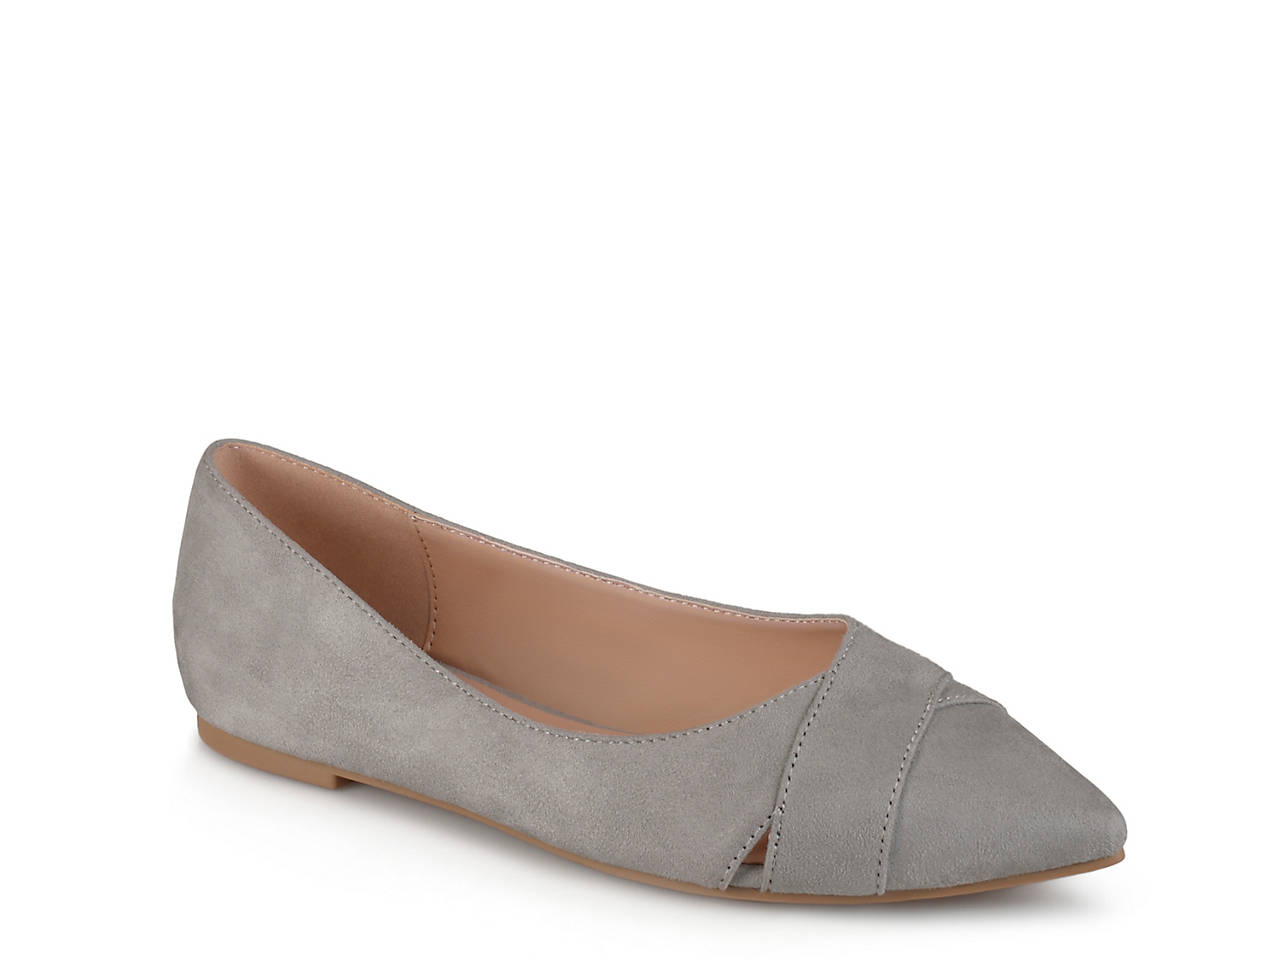 discount Cheapest Journee Collection Winslo ... Women's Pointed Flats largest supplier online cheap cheap online Inexpensive online big discount cheap price fryGu5Lo5